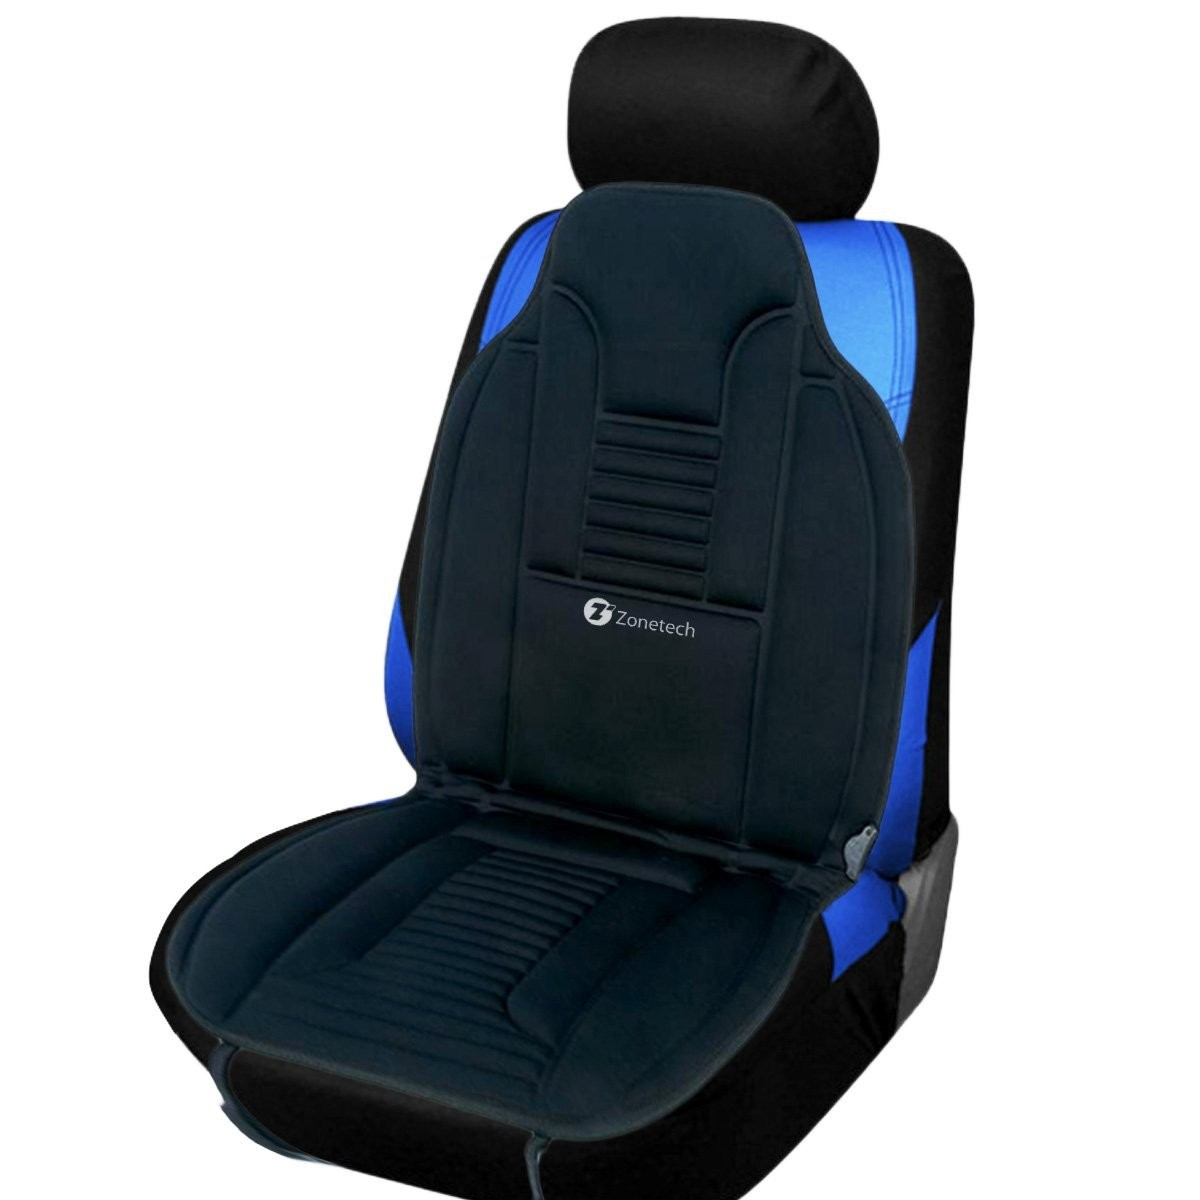 car seat office chair conversion kit rail tile at lowes auto accessories headlight bulbs gifts black 12v